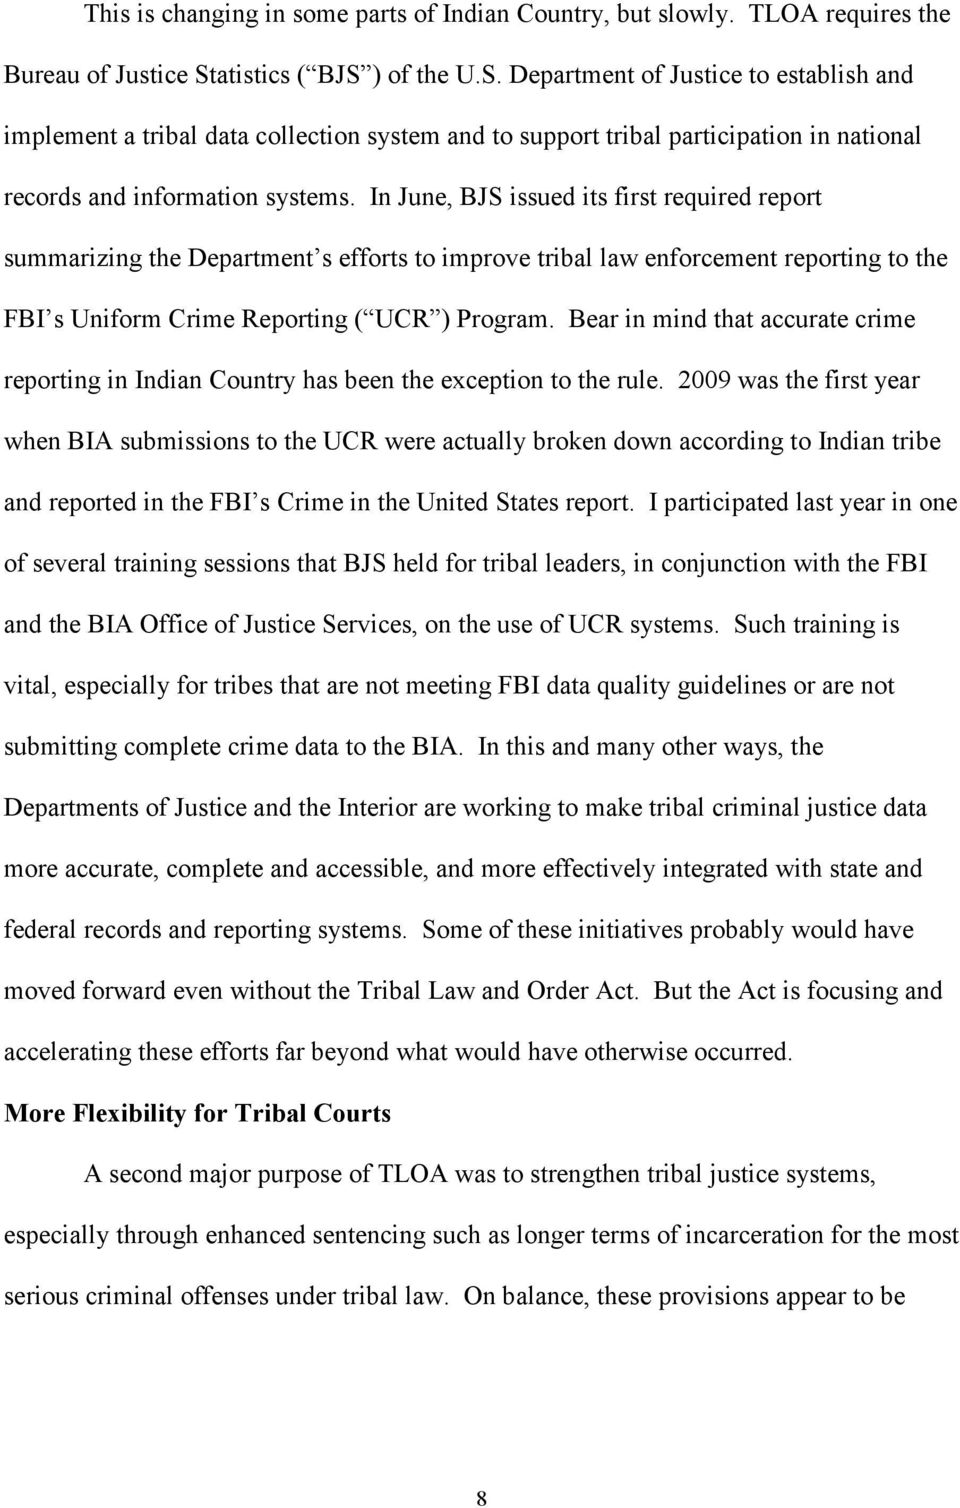 In June, BJS issued its first required report summarizing the Department s efforts to improve tribal law enforcement reporting to the FBI s Uniform Crime Reporting ( UCR ) Program.